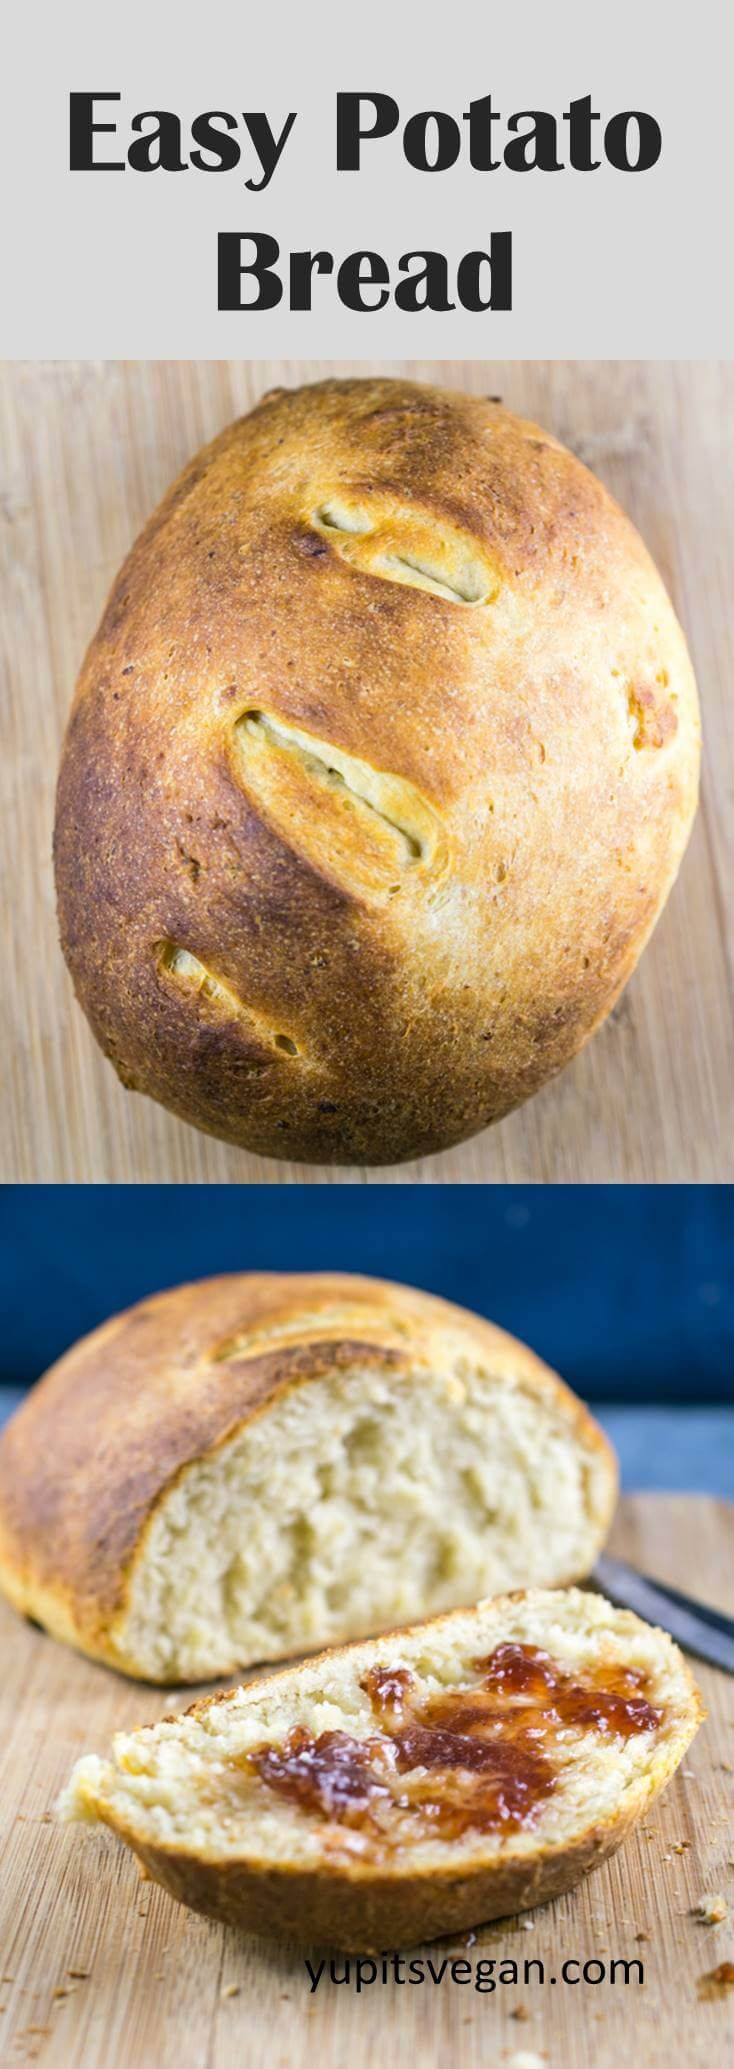 Easy Potato Bread No Fuss Needed This Quick And Easy Bread Can Be Made With Freshly Cooked